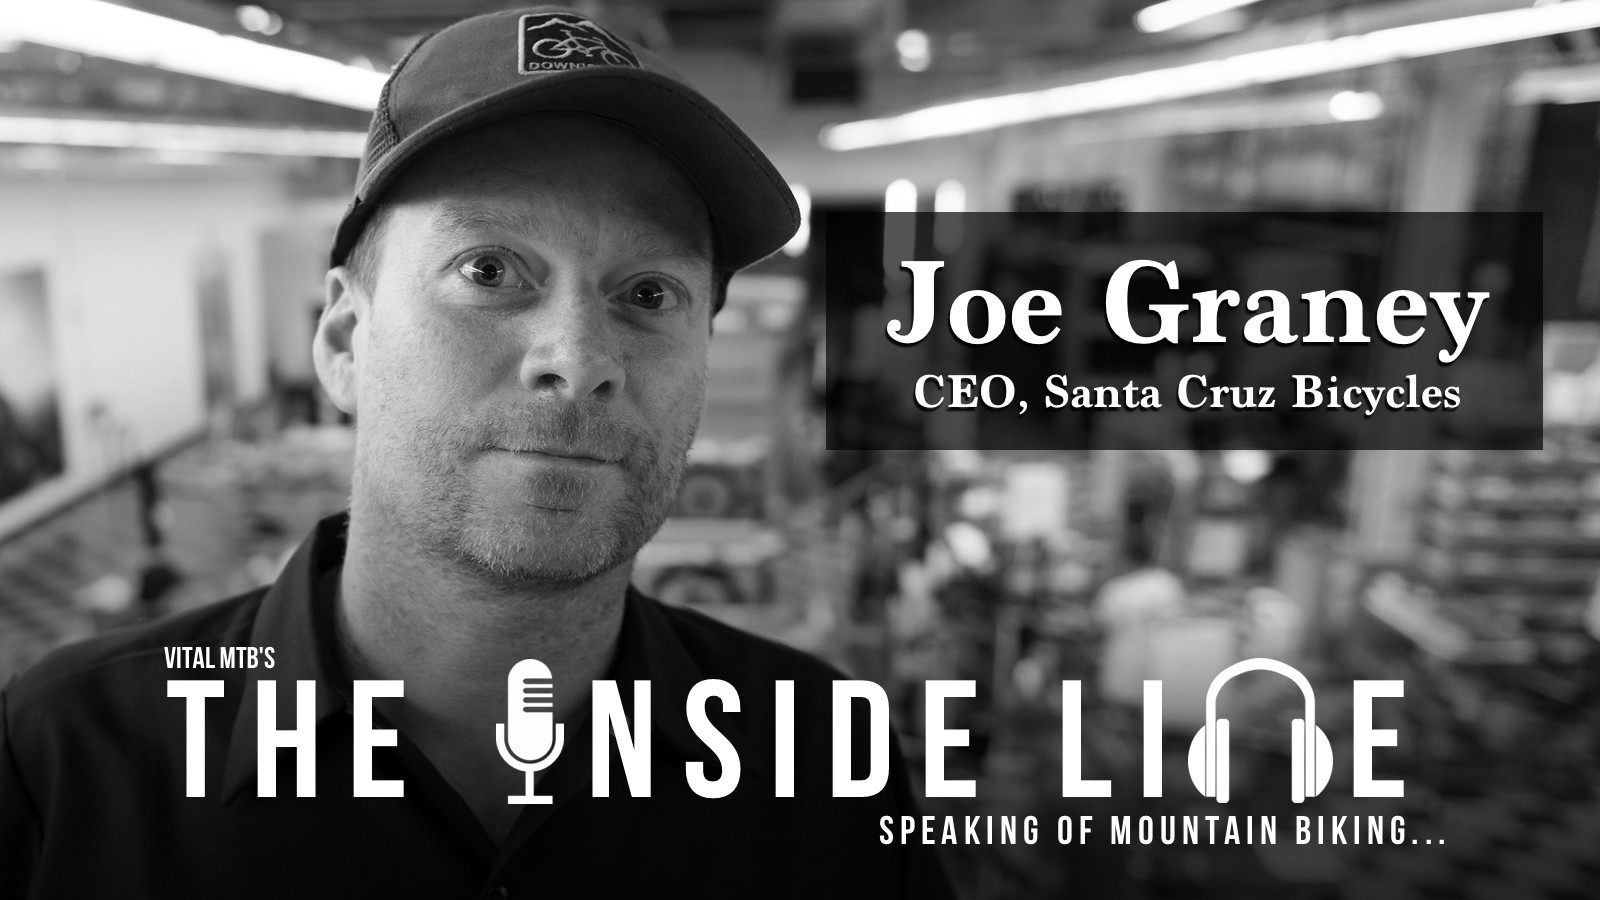 The Inside Line Podcast - Joe Graney, CEO of Santa Cruz Bicycles